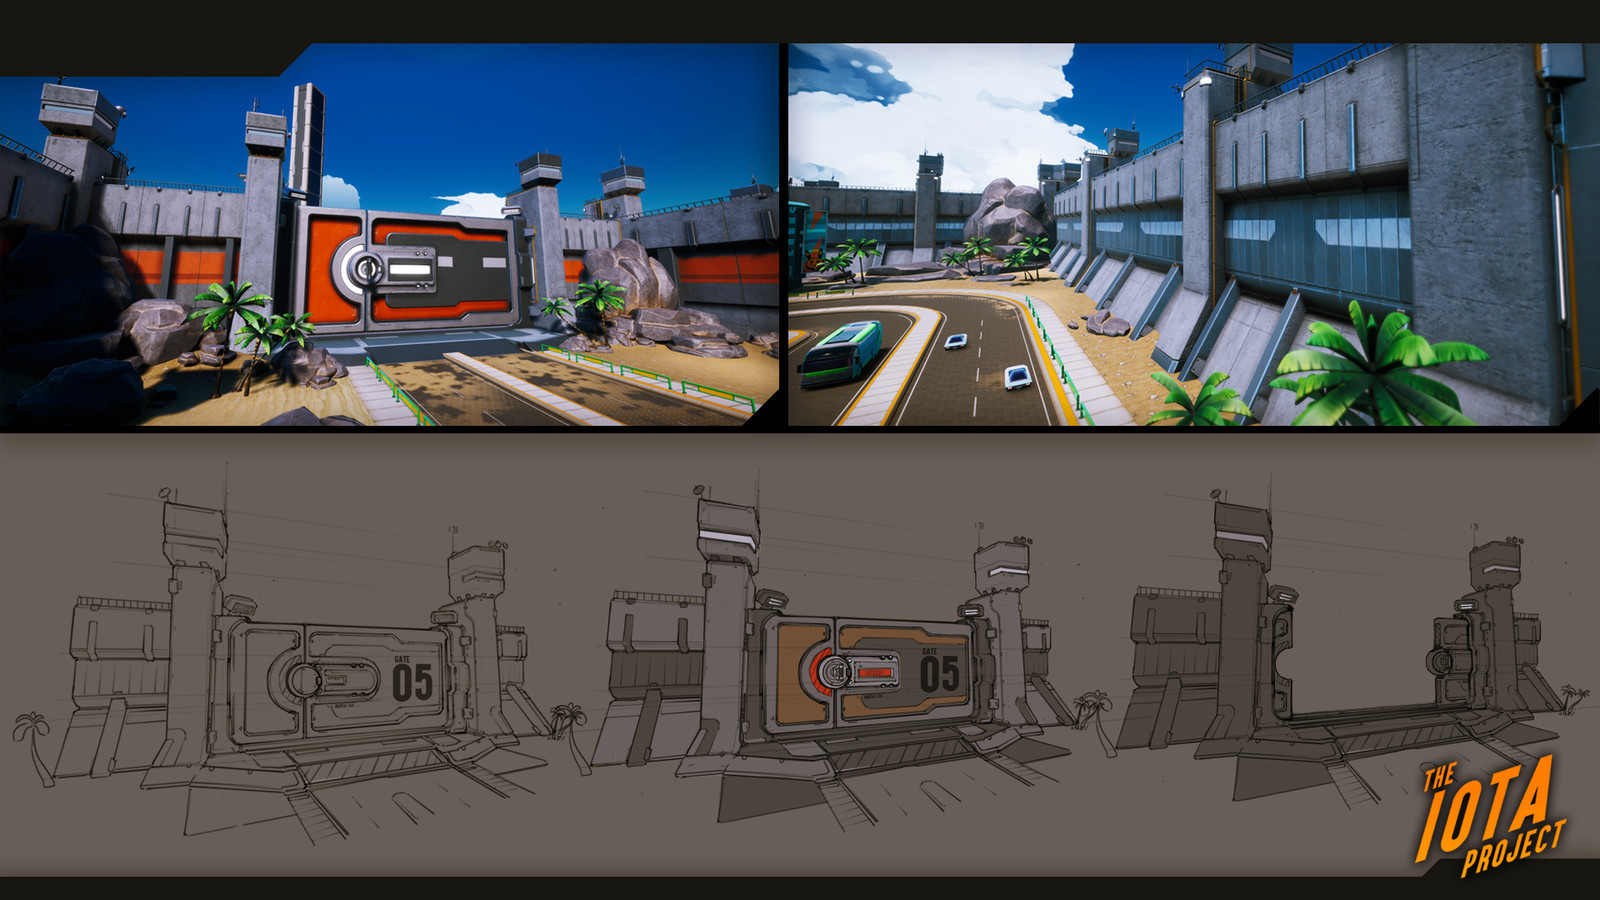 Concepts for the wall and door assets. This was the main entrance to the city. If the town was under attack the door would lock down as to prevent more kaiju from entering.